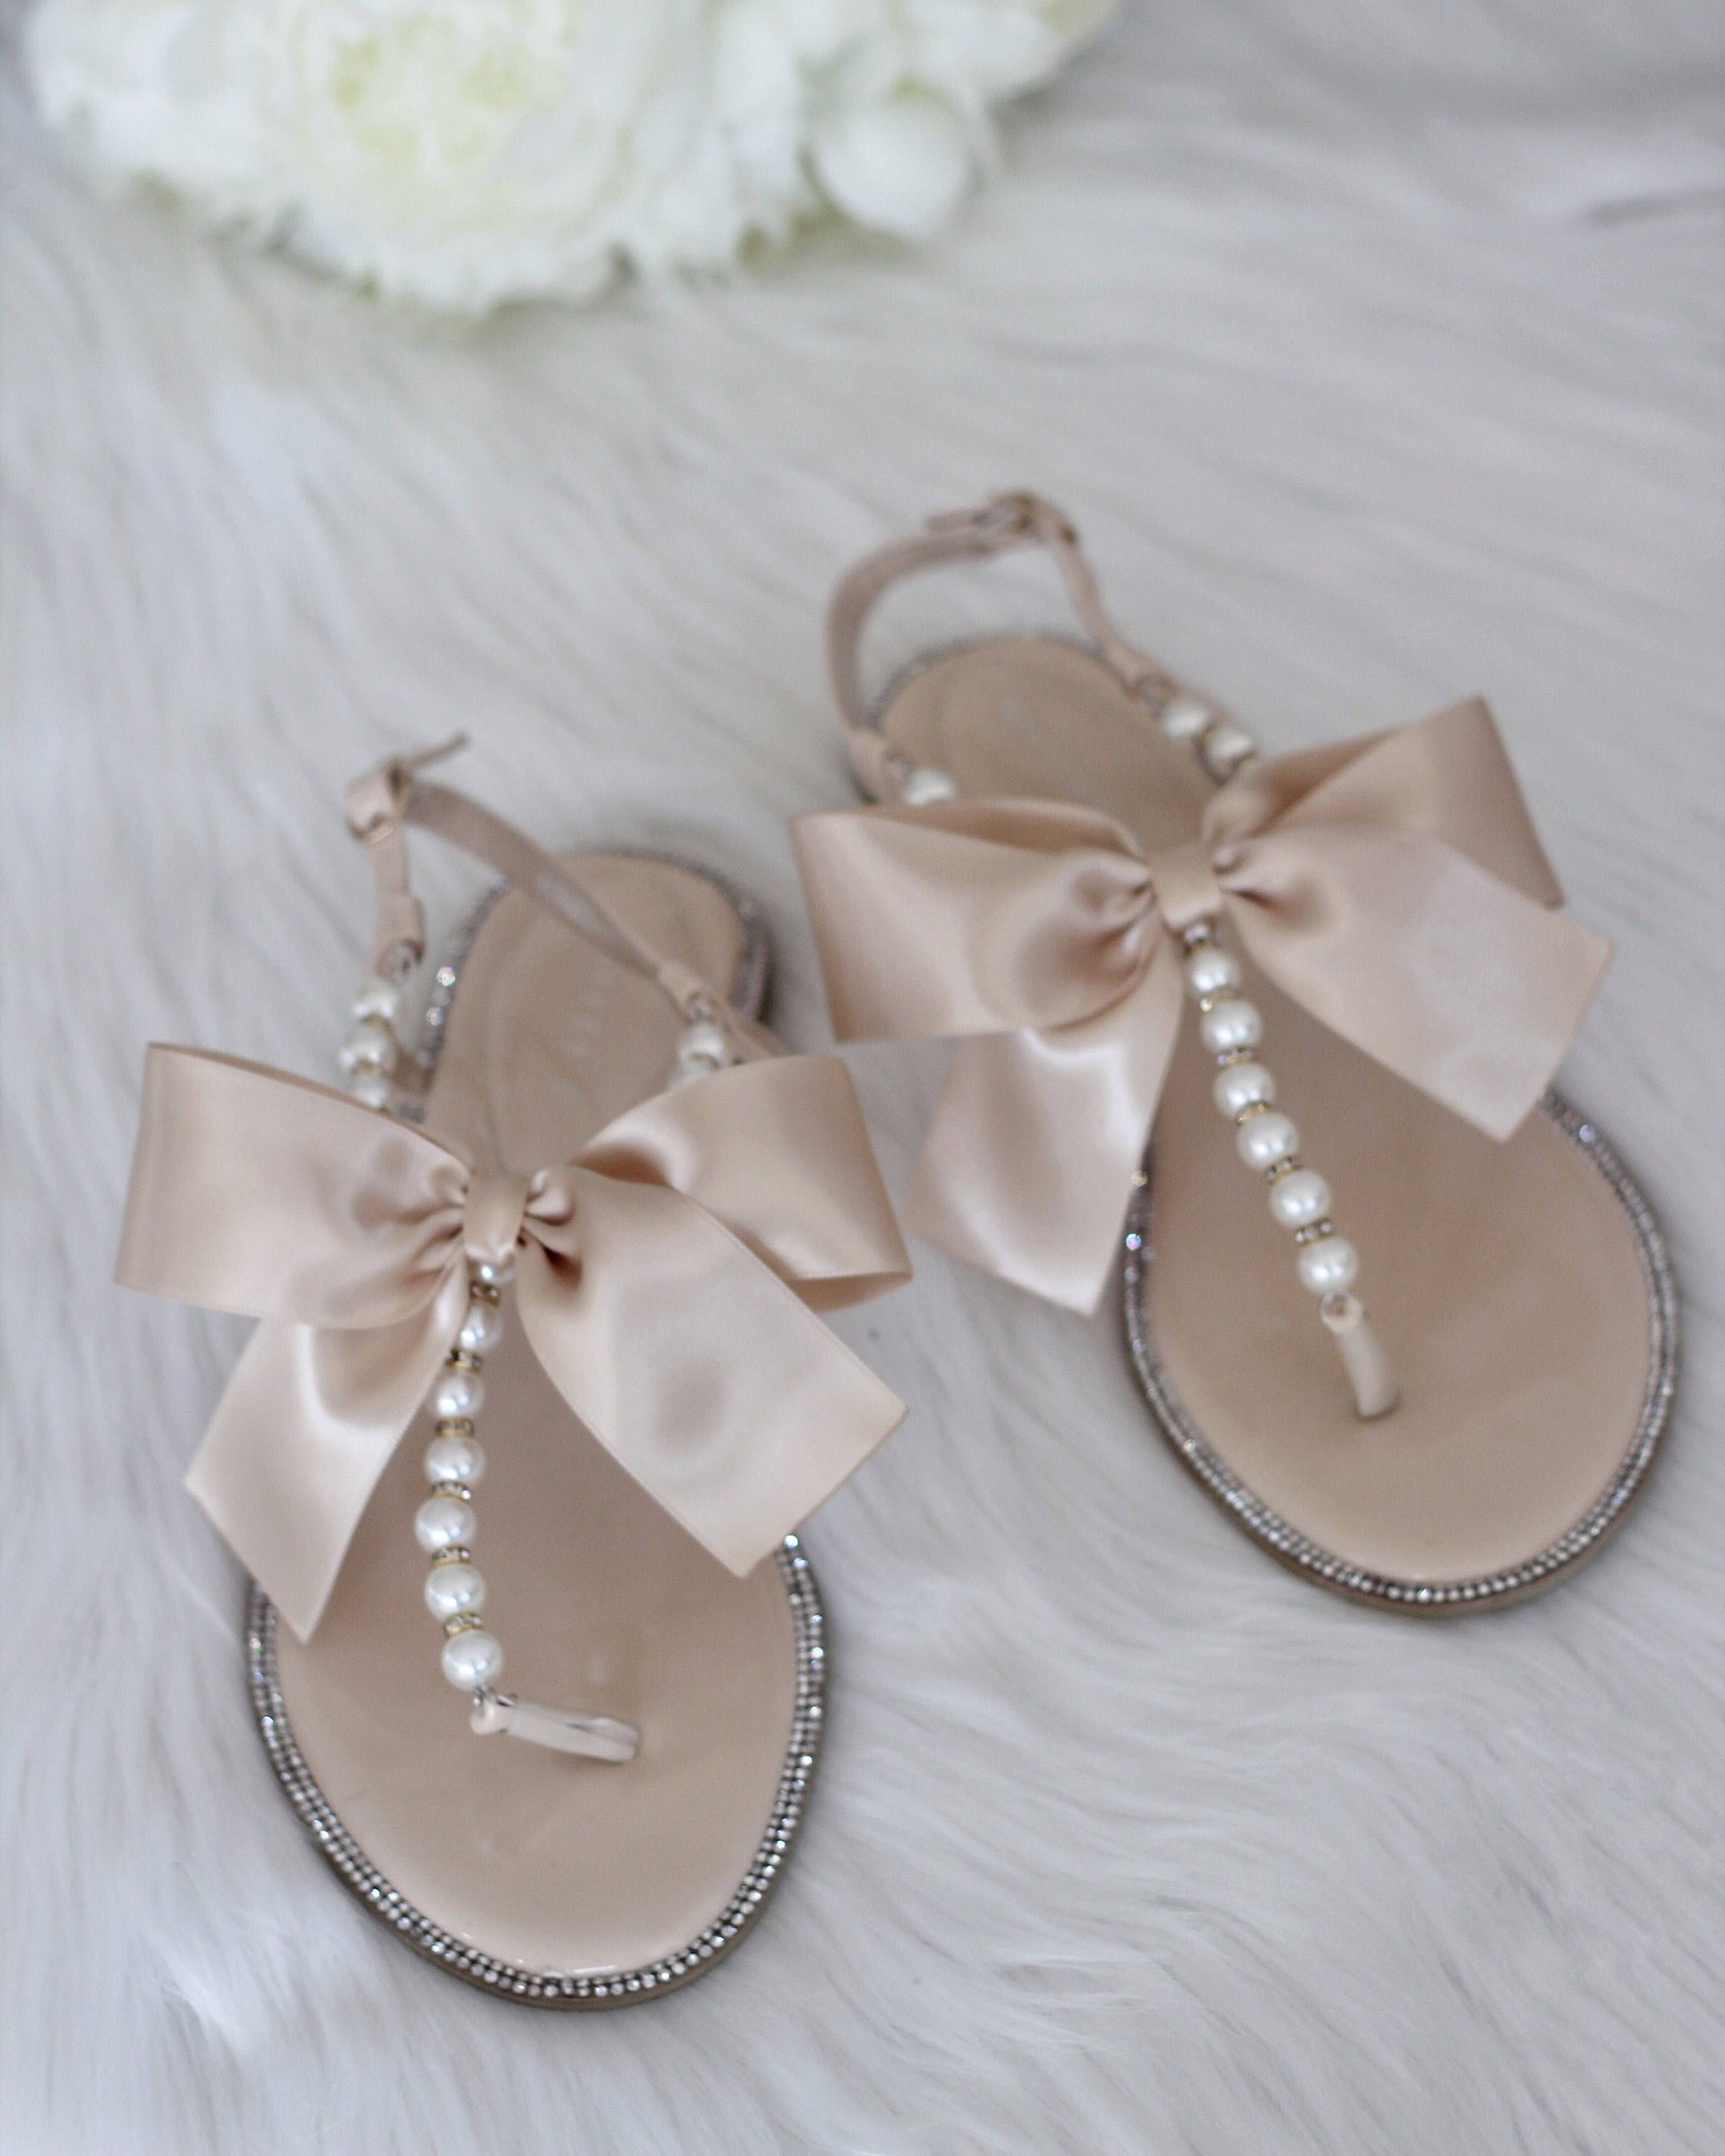 e9a06c6d5fc847 Women Pearls Wedding Sandals - BEIGE Patent Pearl Rhinestones flat sandal  with oversized satin bow